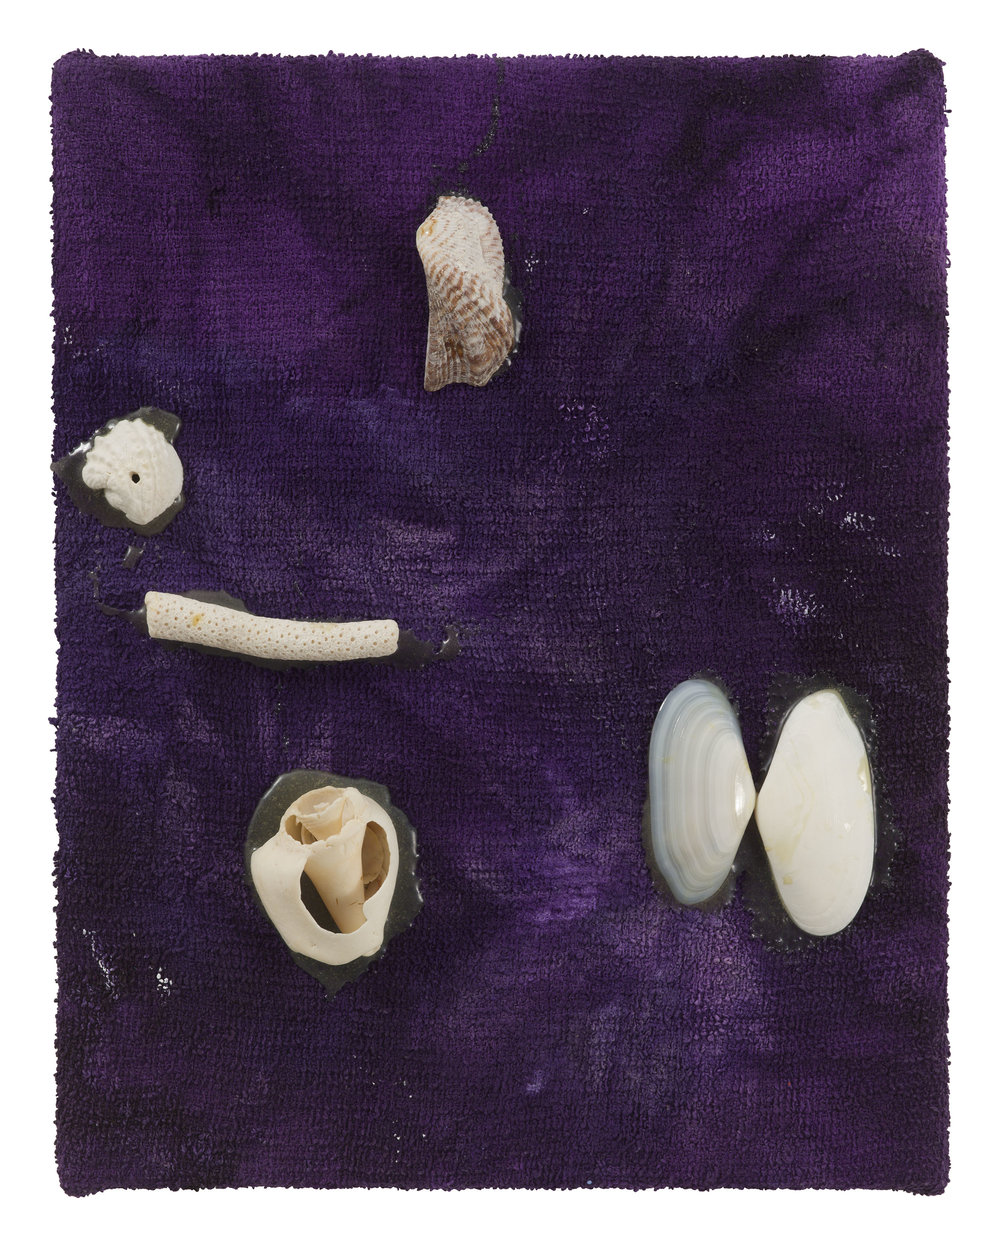 Drew Beattie  Shells on Purple   2017 acrylic, shells and epoxy on wash cloth 14 x 11 inches